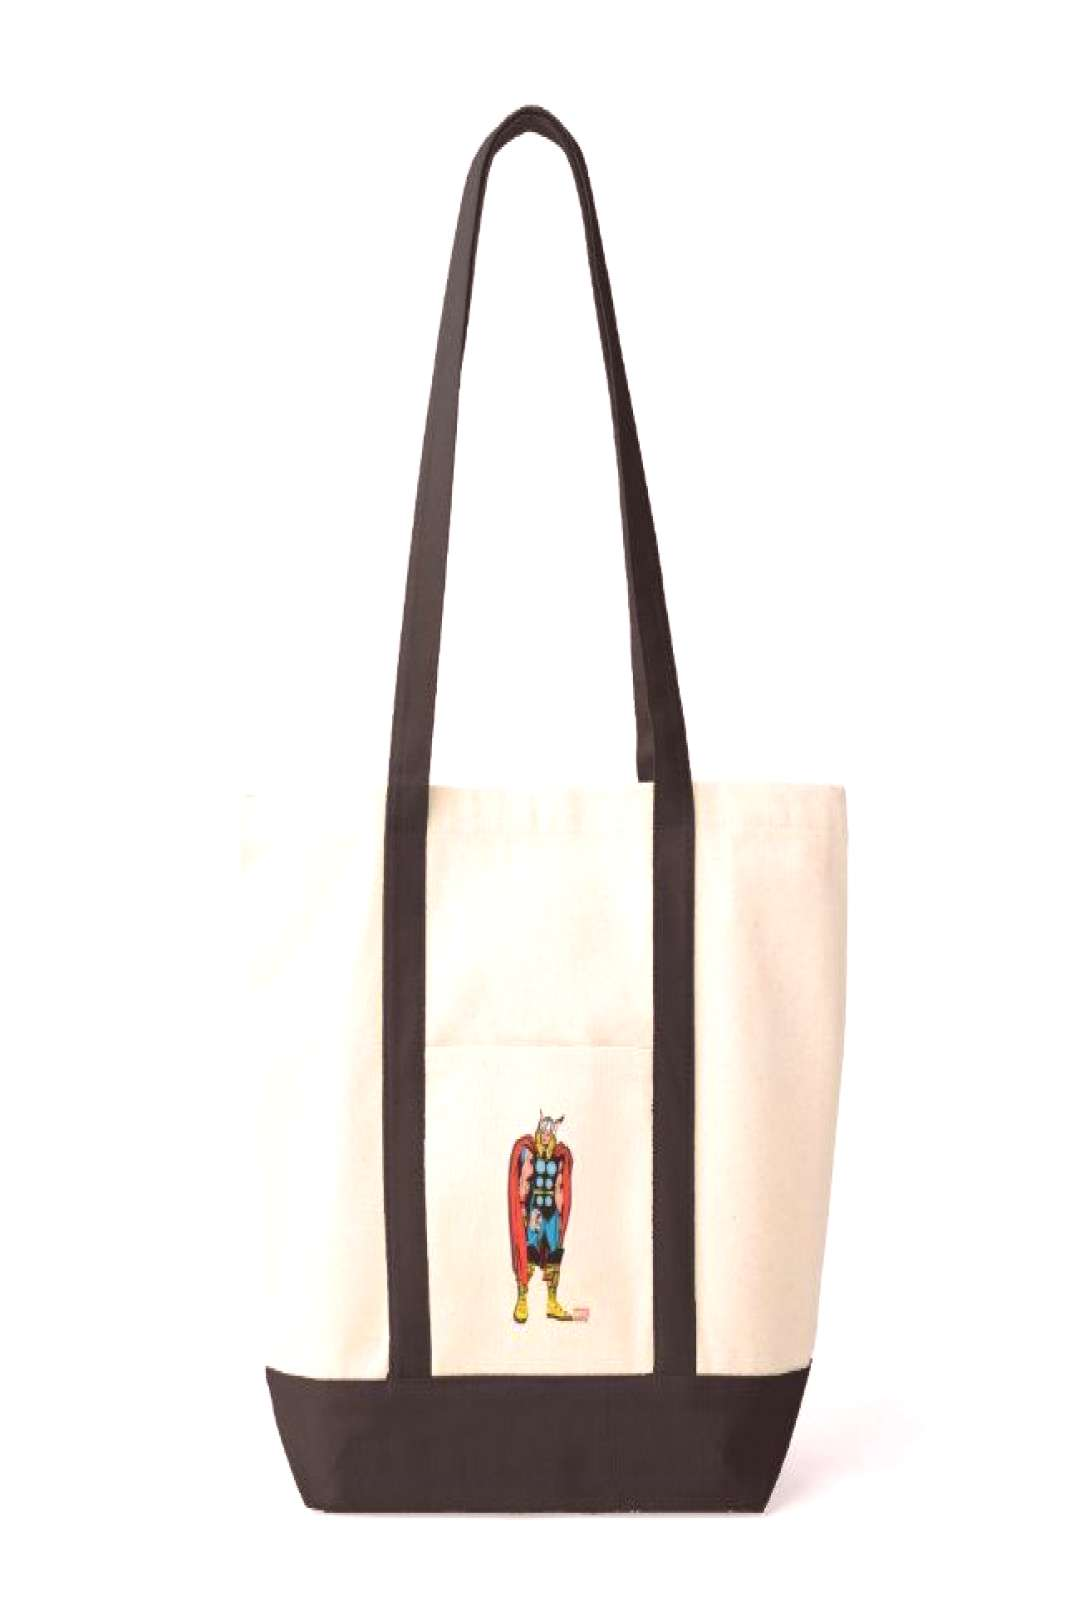 Thor Standing Tall Retro Comic Art Tote Bag ,